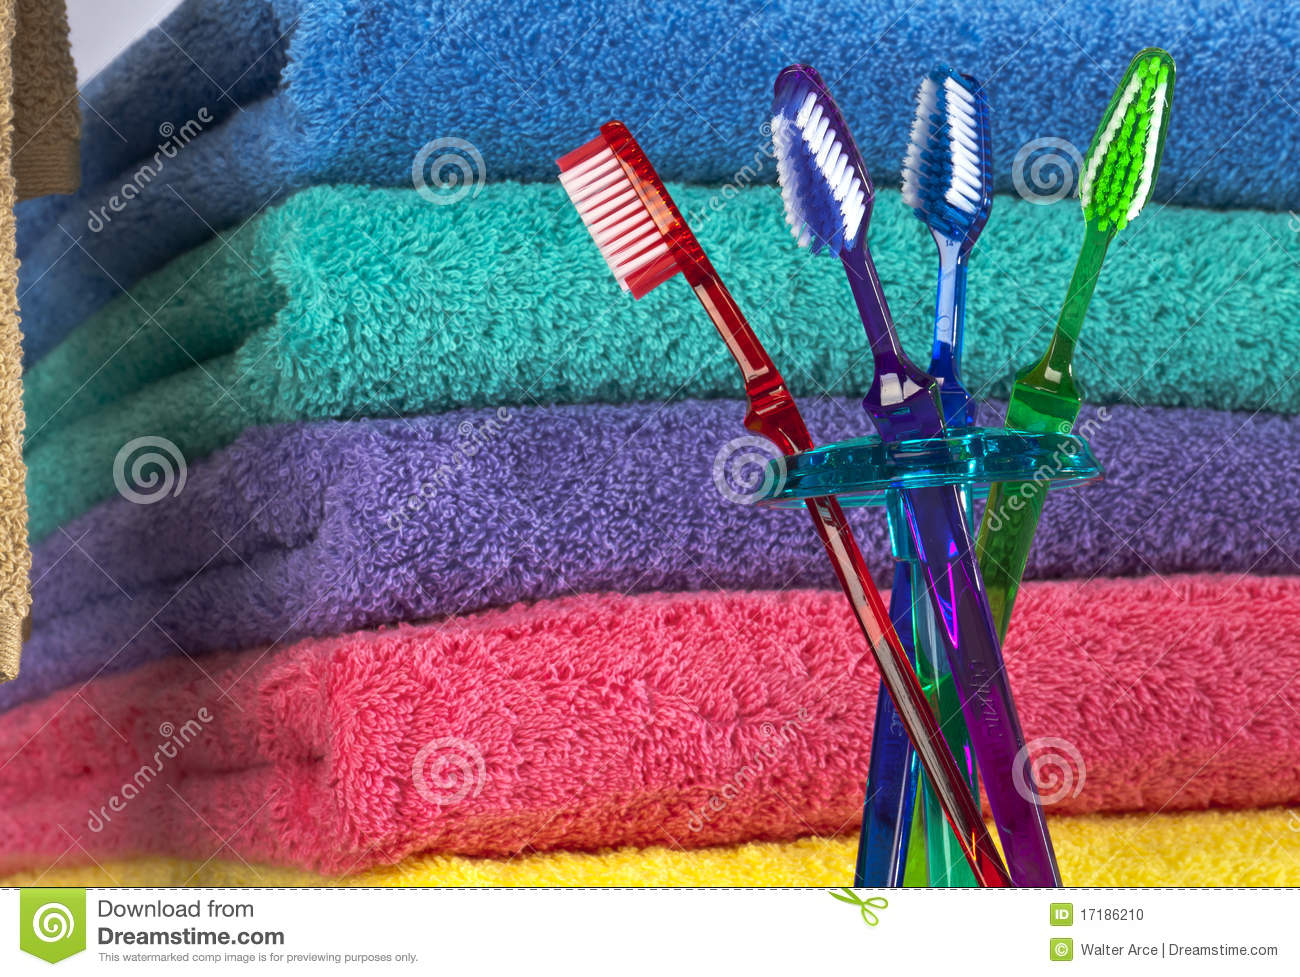 Toothbrush and Bath Towels